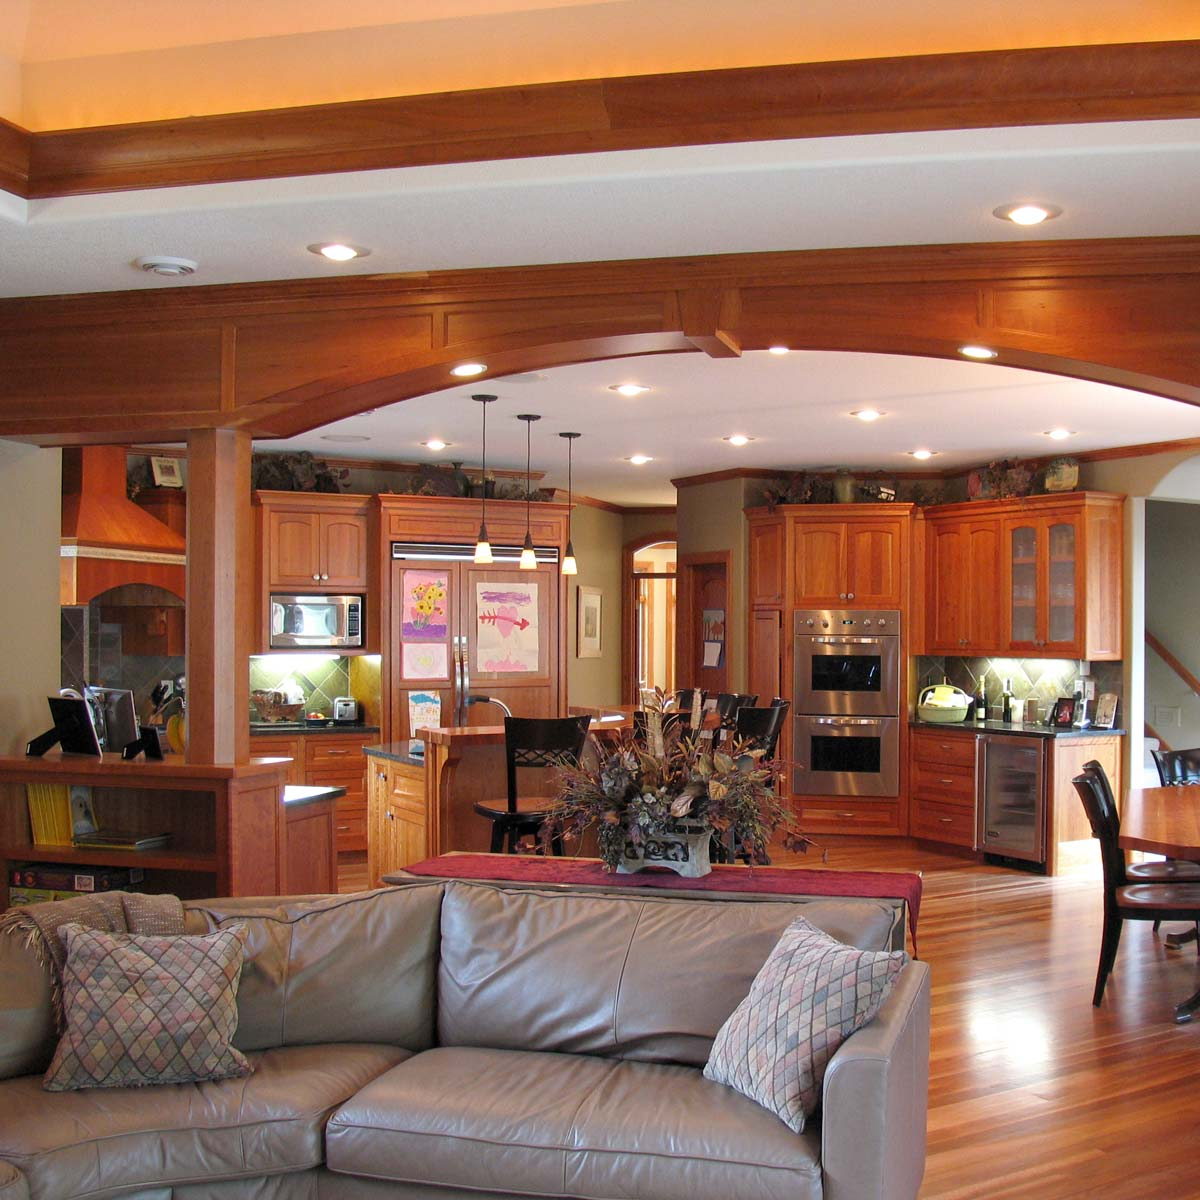 Expansive family room with a wide, gentle wooden arch separating sections of the room